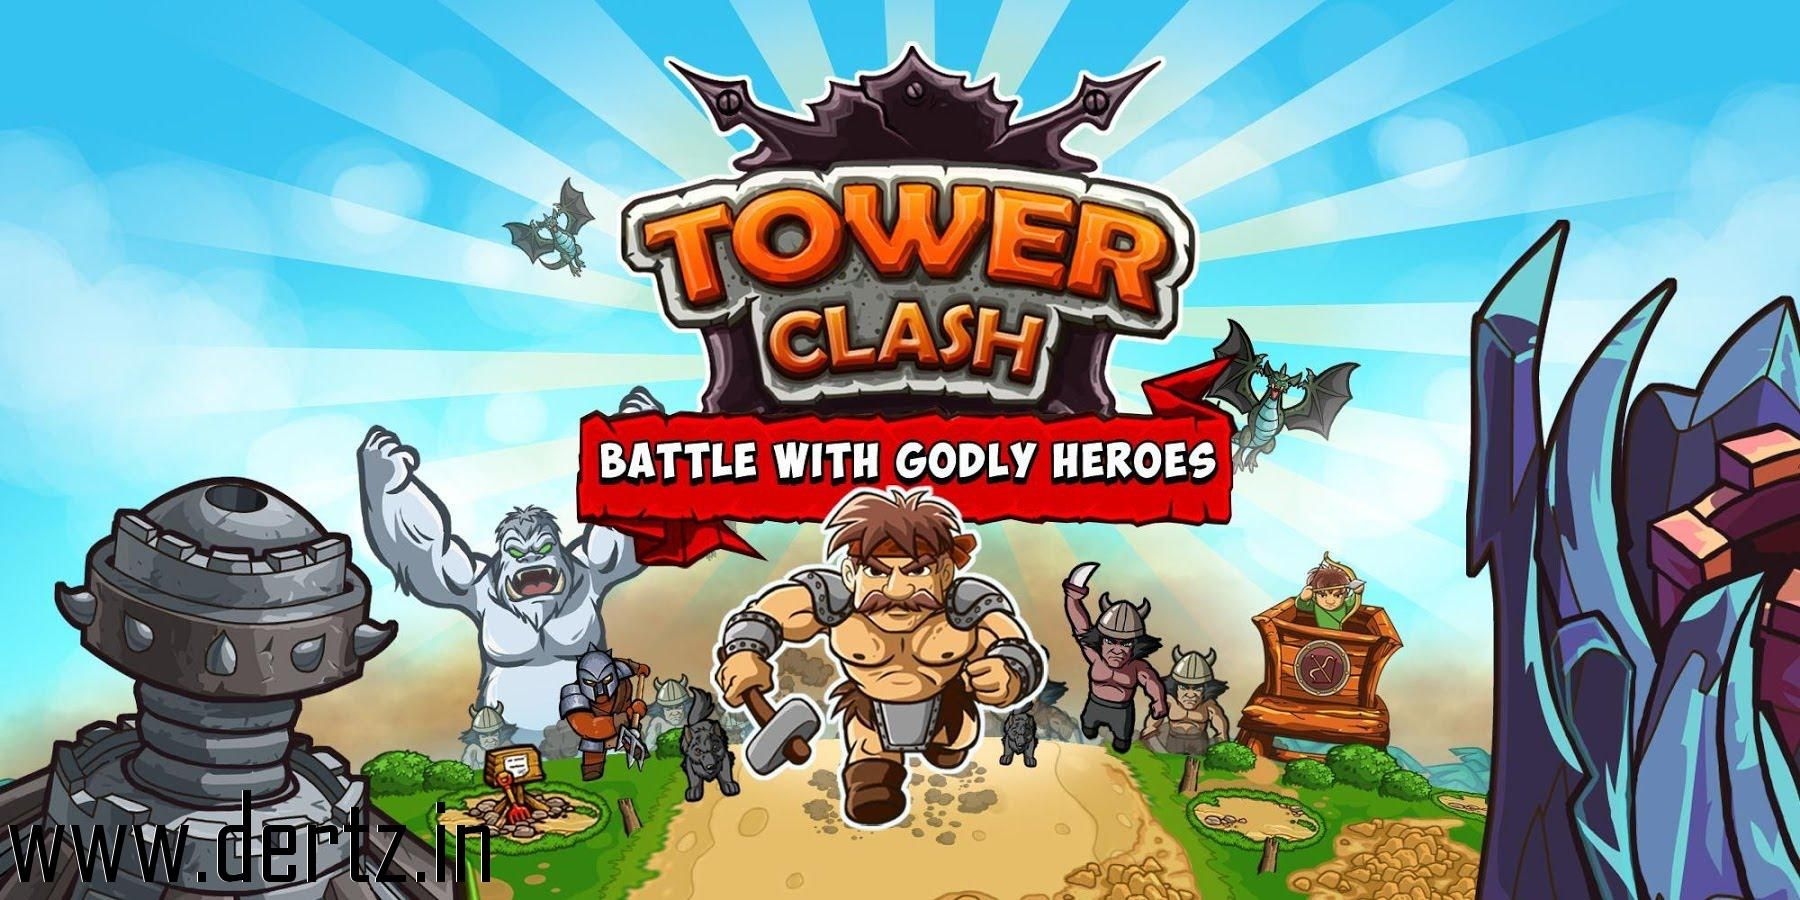 Download Tower clash TD full version from Dertz without